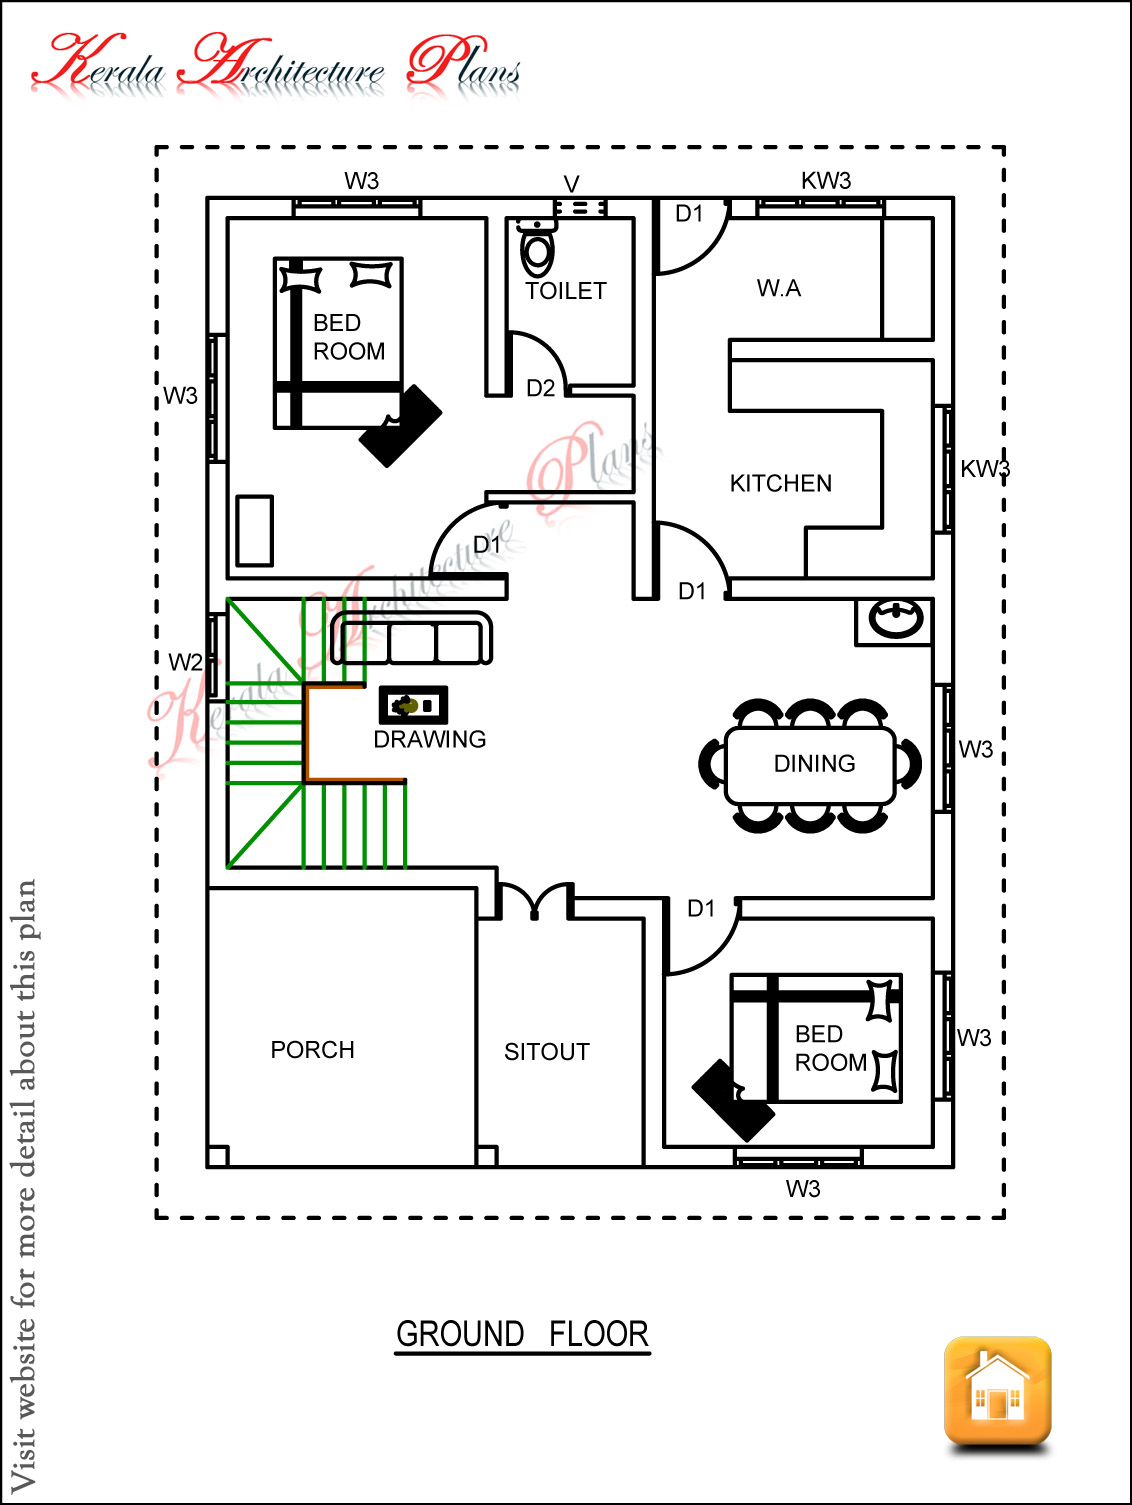 Three bedroom house plan architecture kerala for 3 bedroom house designs